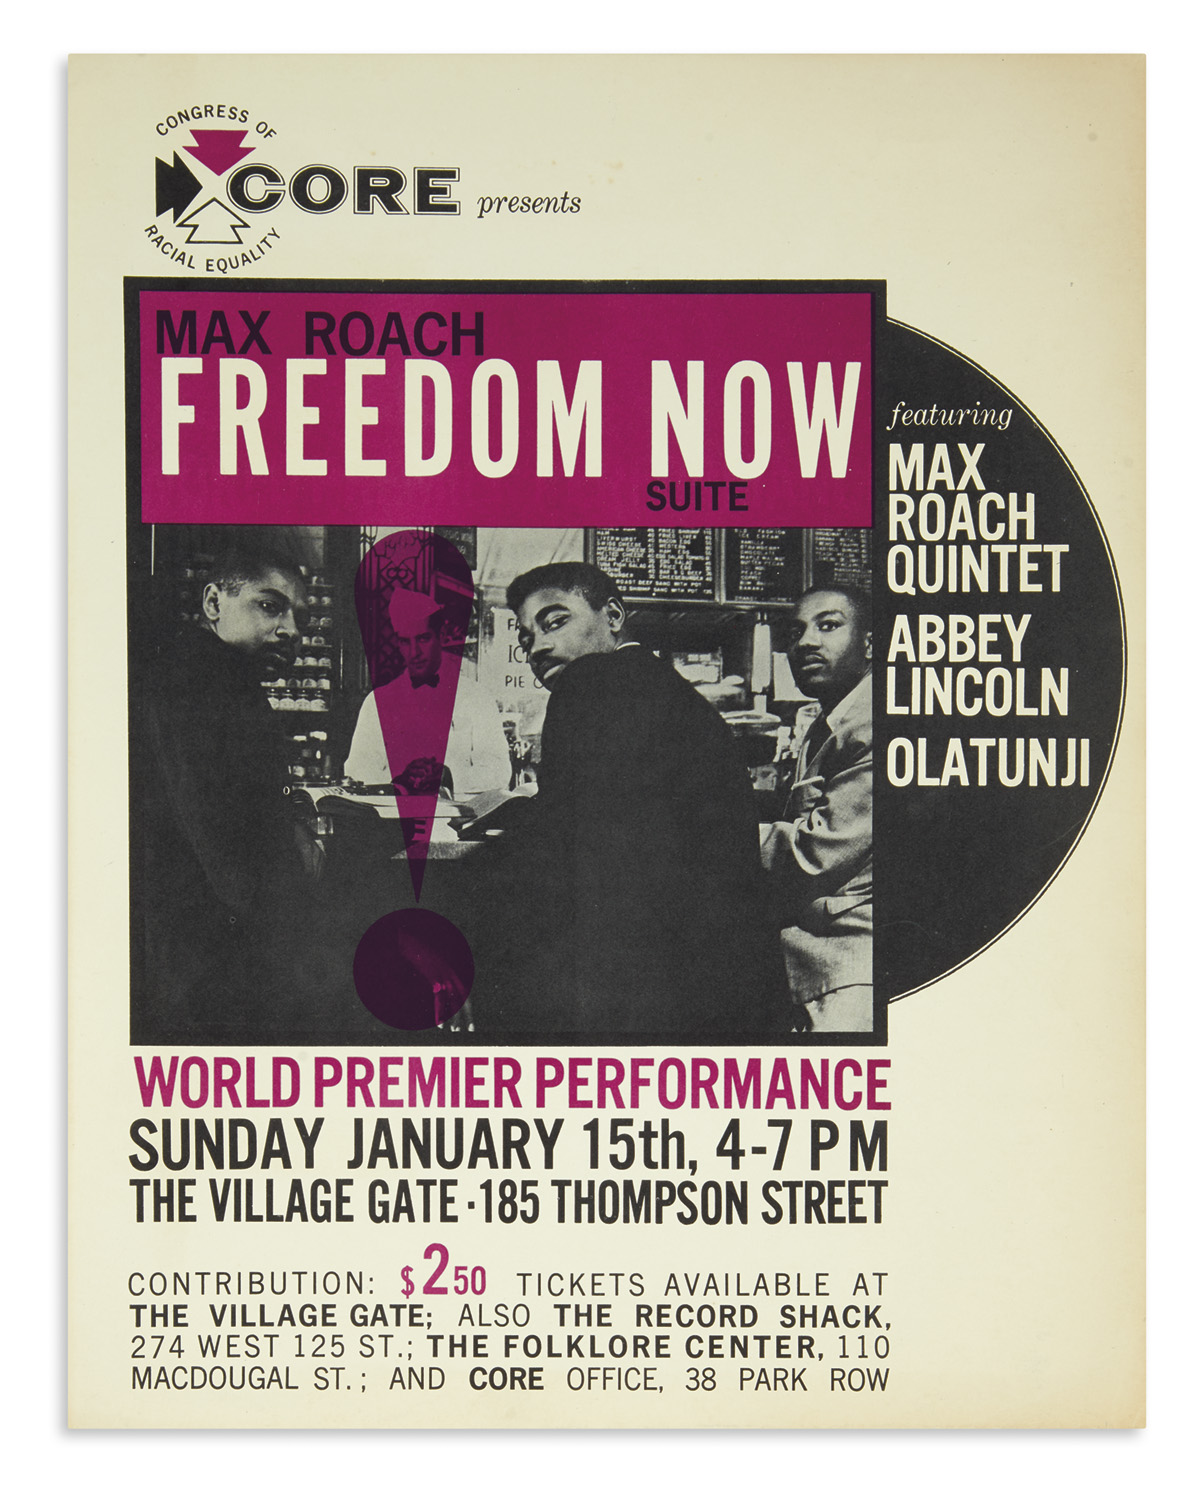 (MUSIC.) CORE Presents Max Roach, Freedom Now Suite . . . World Premier Performance.